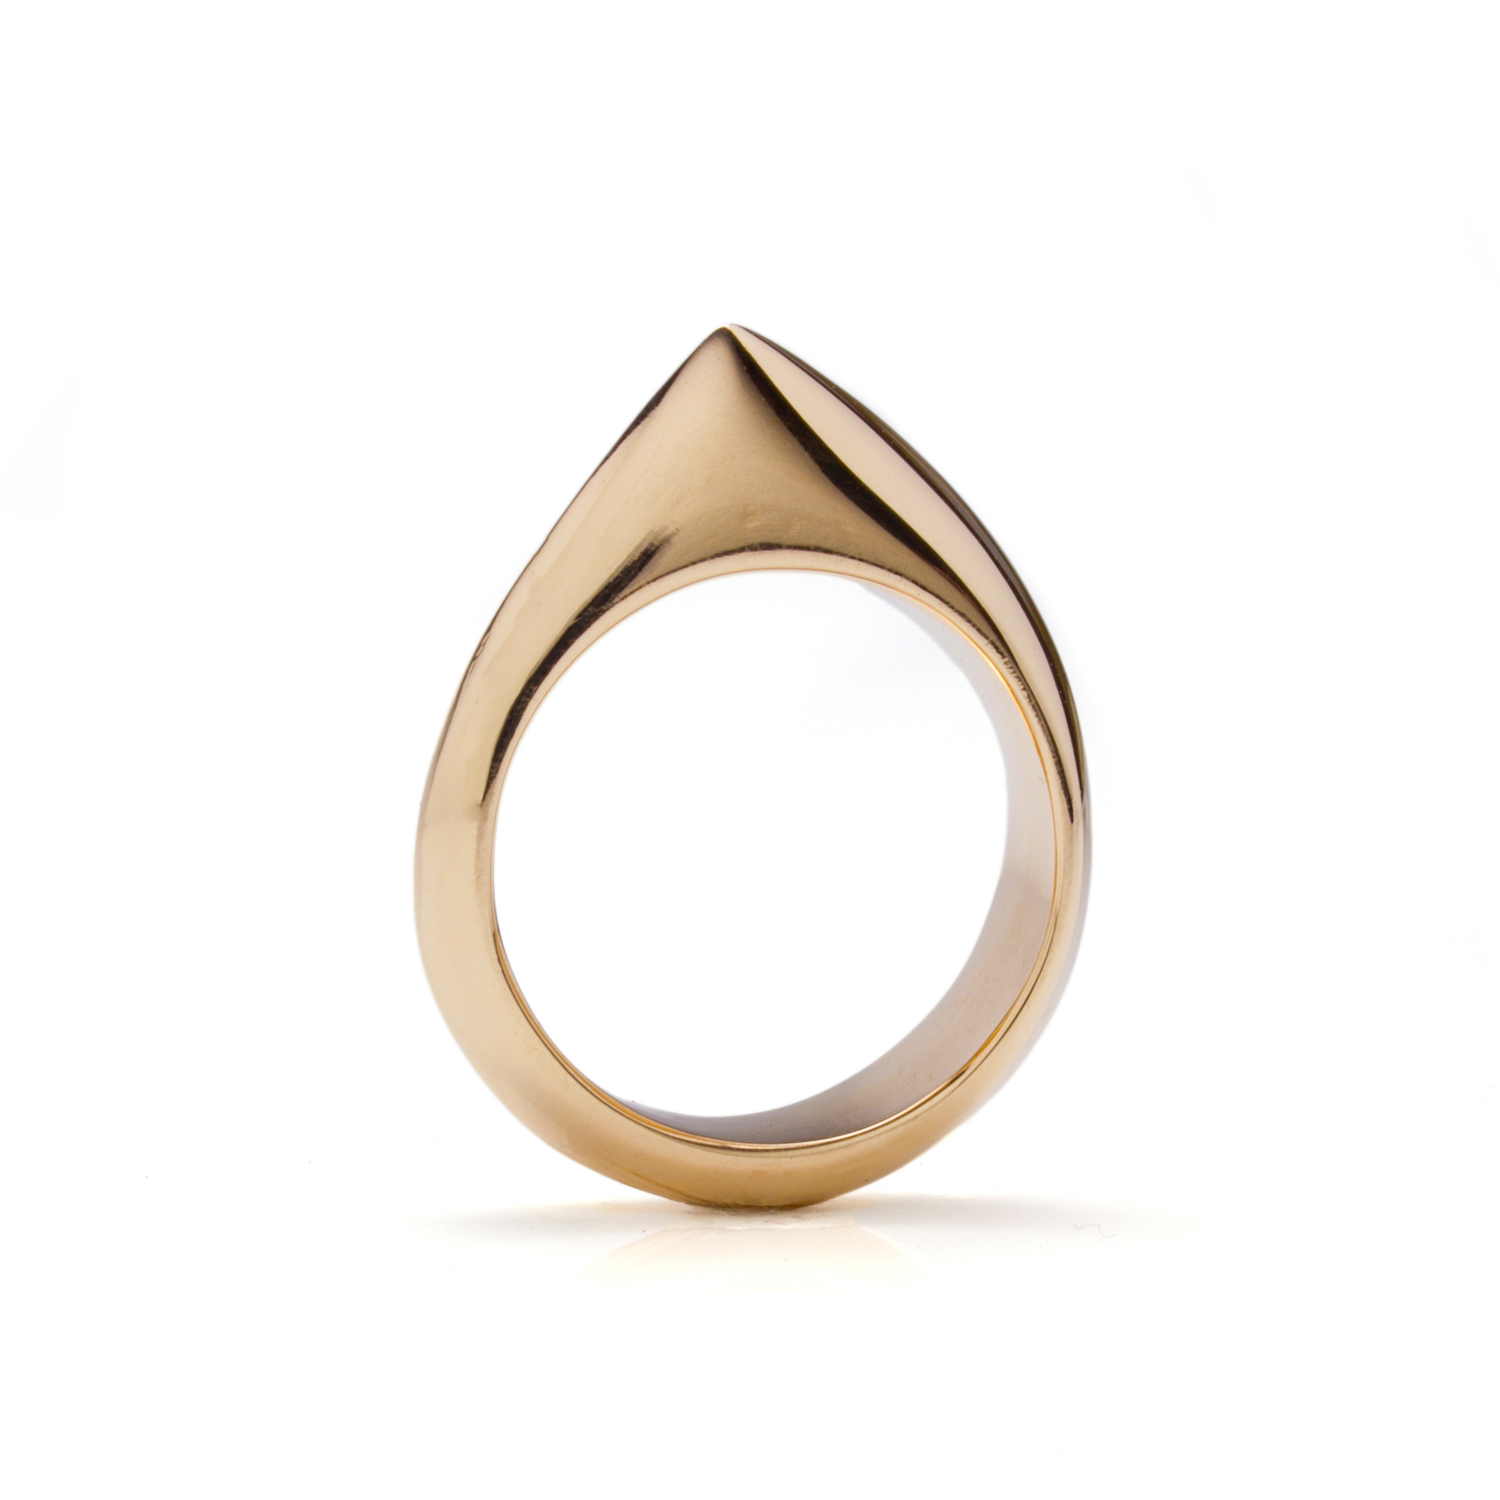 Casting a Recycled Gold Ring